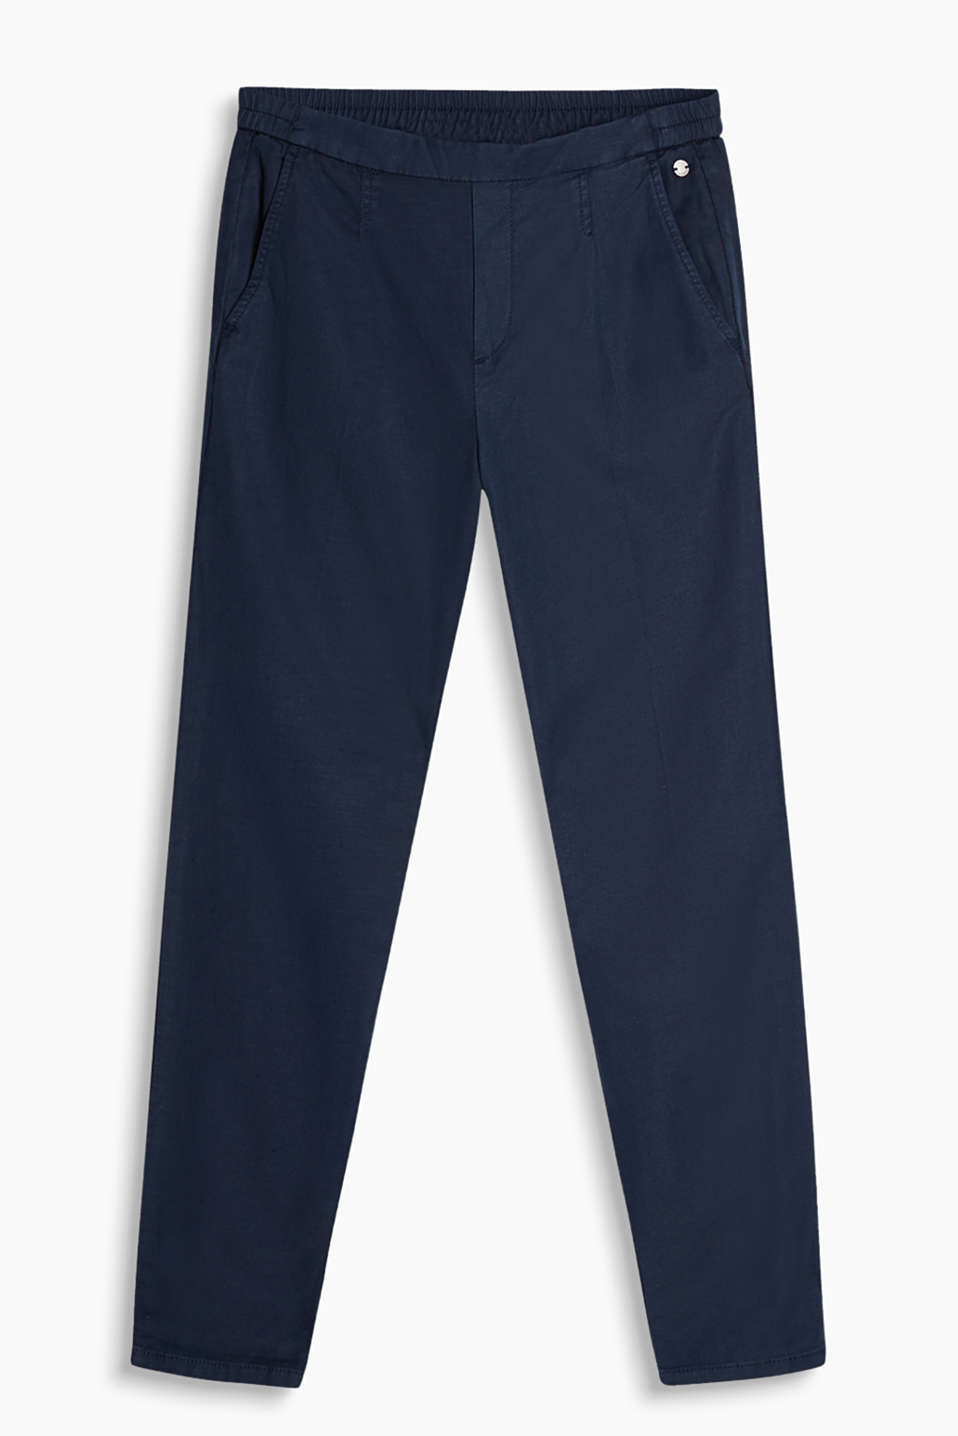 Airy, linen blend chinos with a comfy, partially elasticated waistband